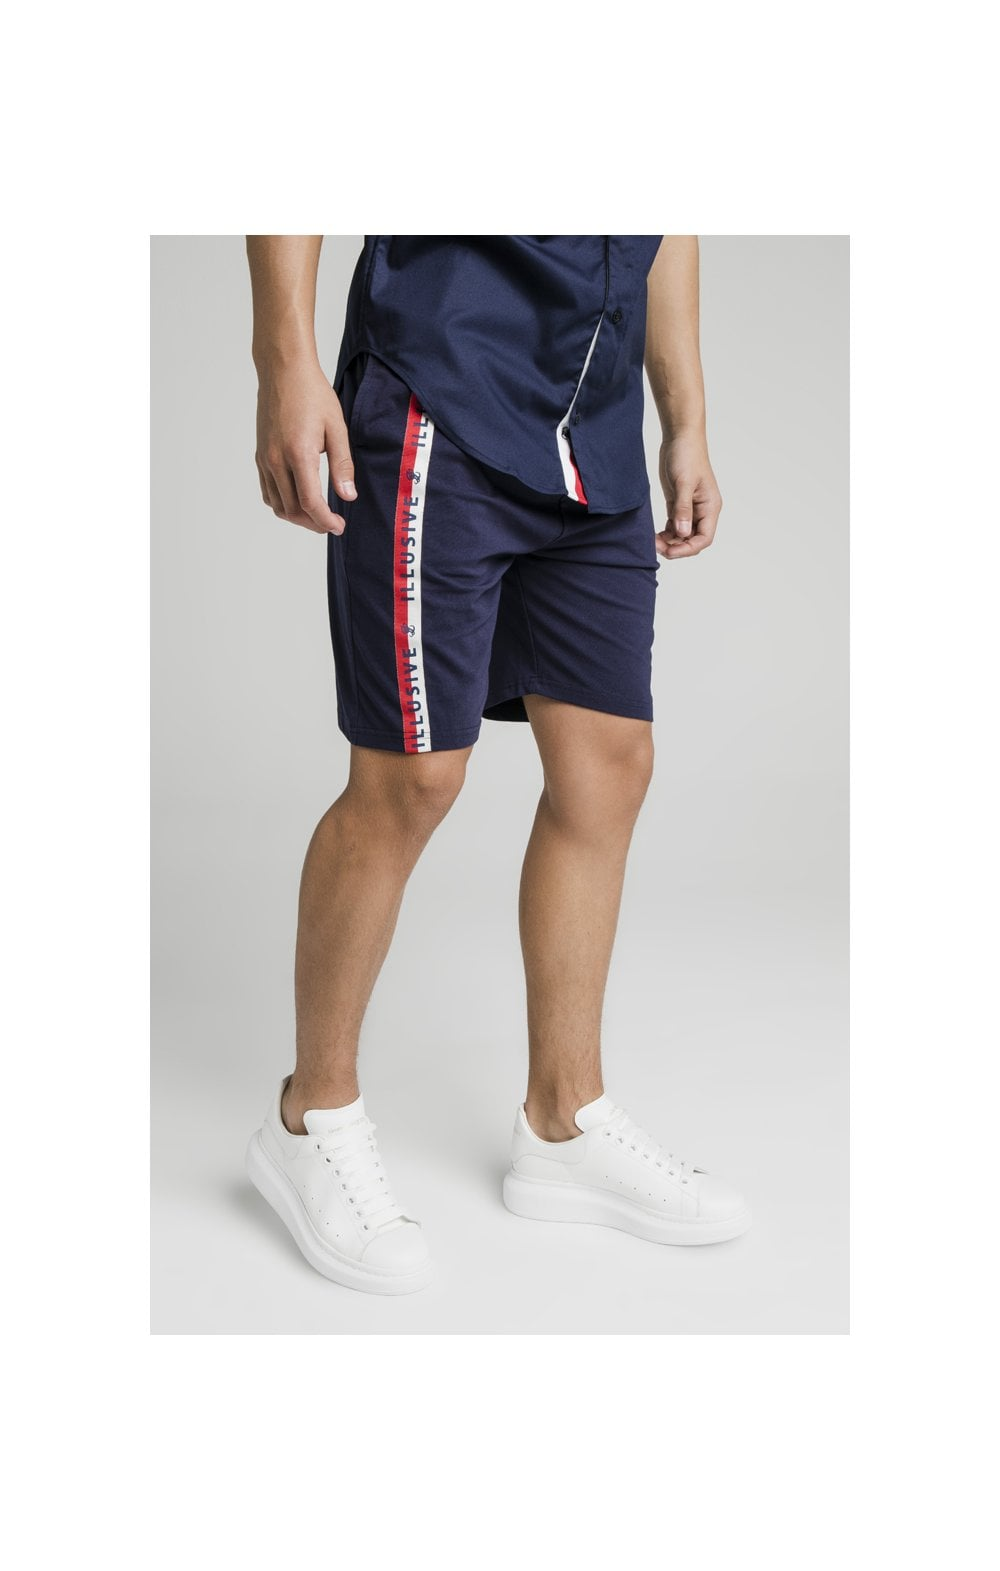 Load image into Gallery viewer, Illusive London Side Tape Jersey Shorts - Navy (1)